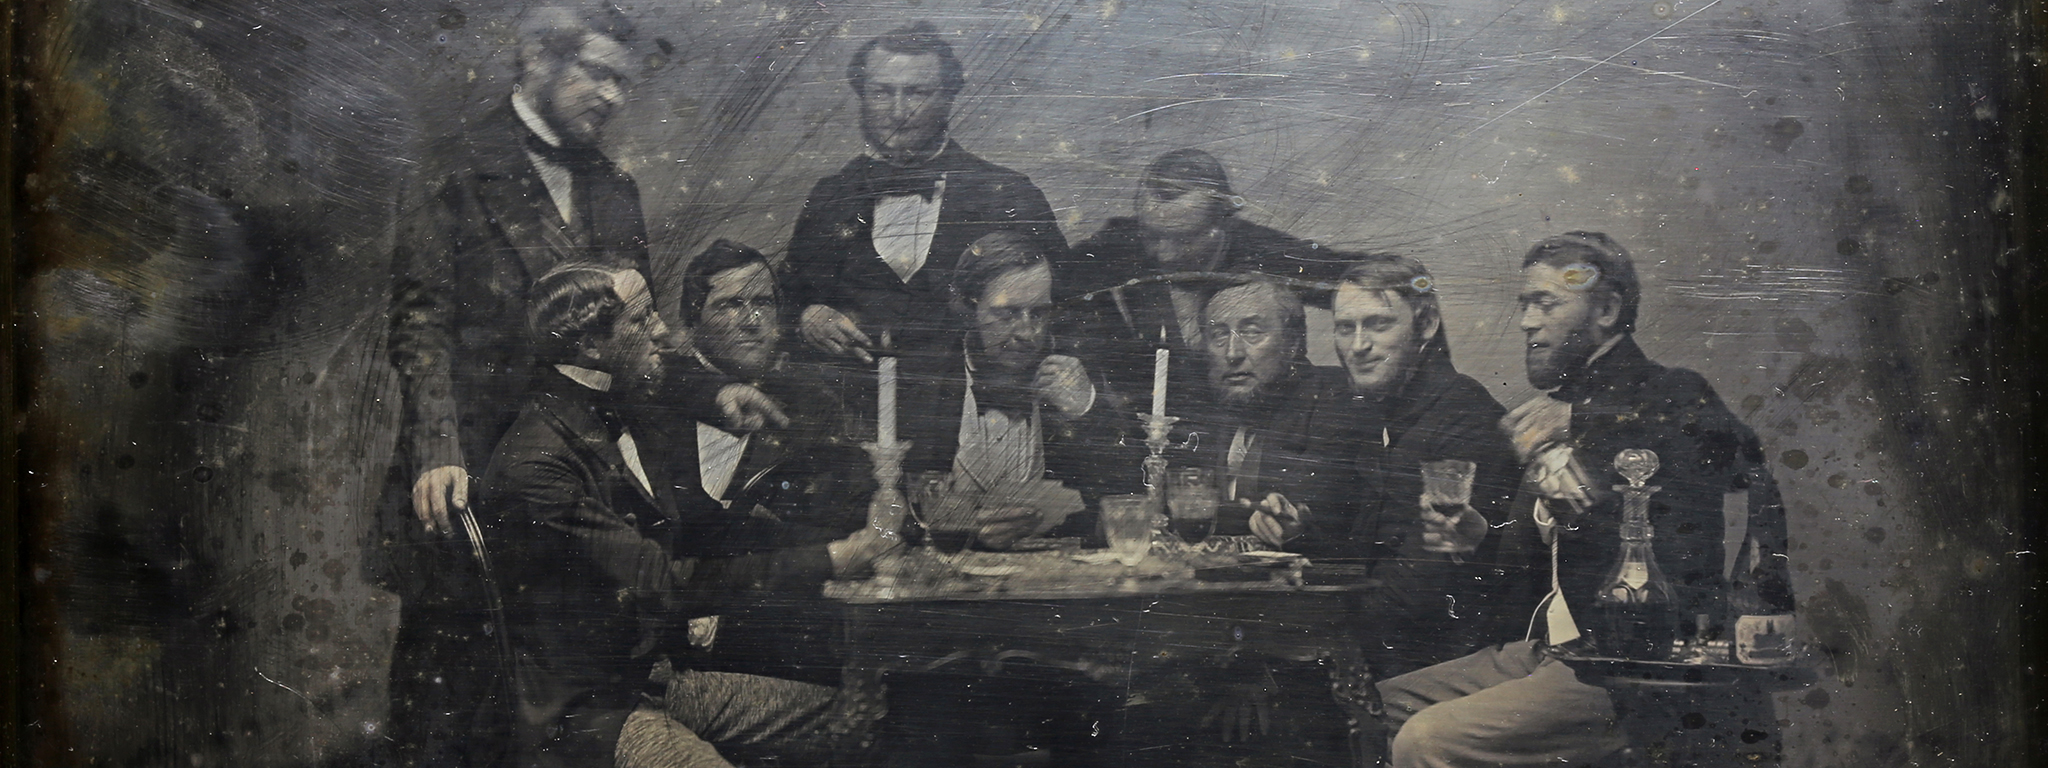 Inmigrantes alemanes en Buenos Aires jugando cartas / German Immigrants in Buenos Aires Playing Cards, about 1852, Charles DeForest Fredricks, daguerreotype. Courtesy of Carlos G. Vertanessian